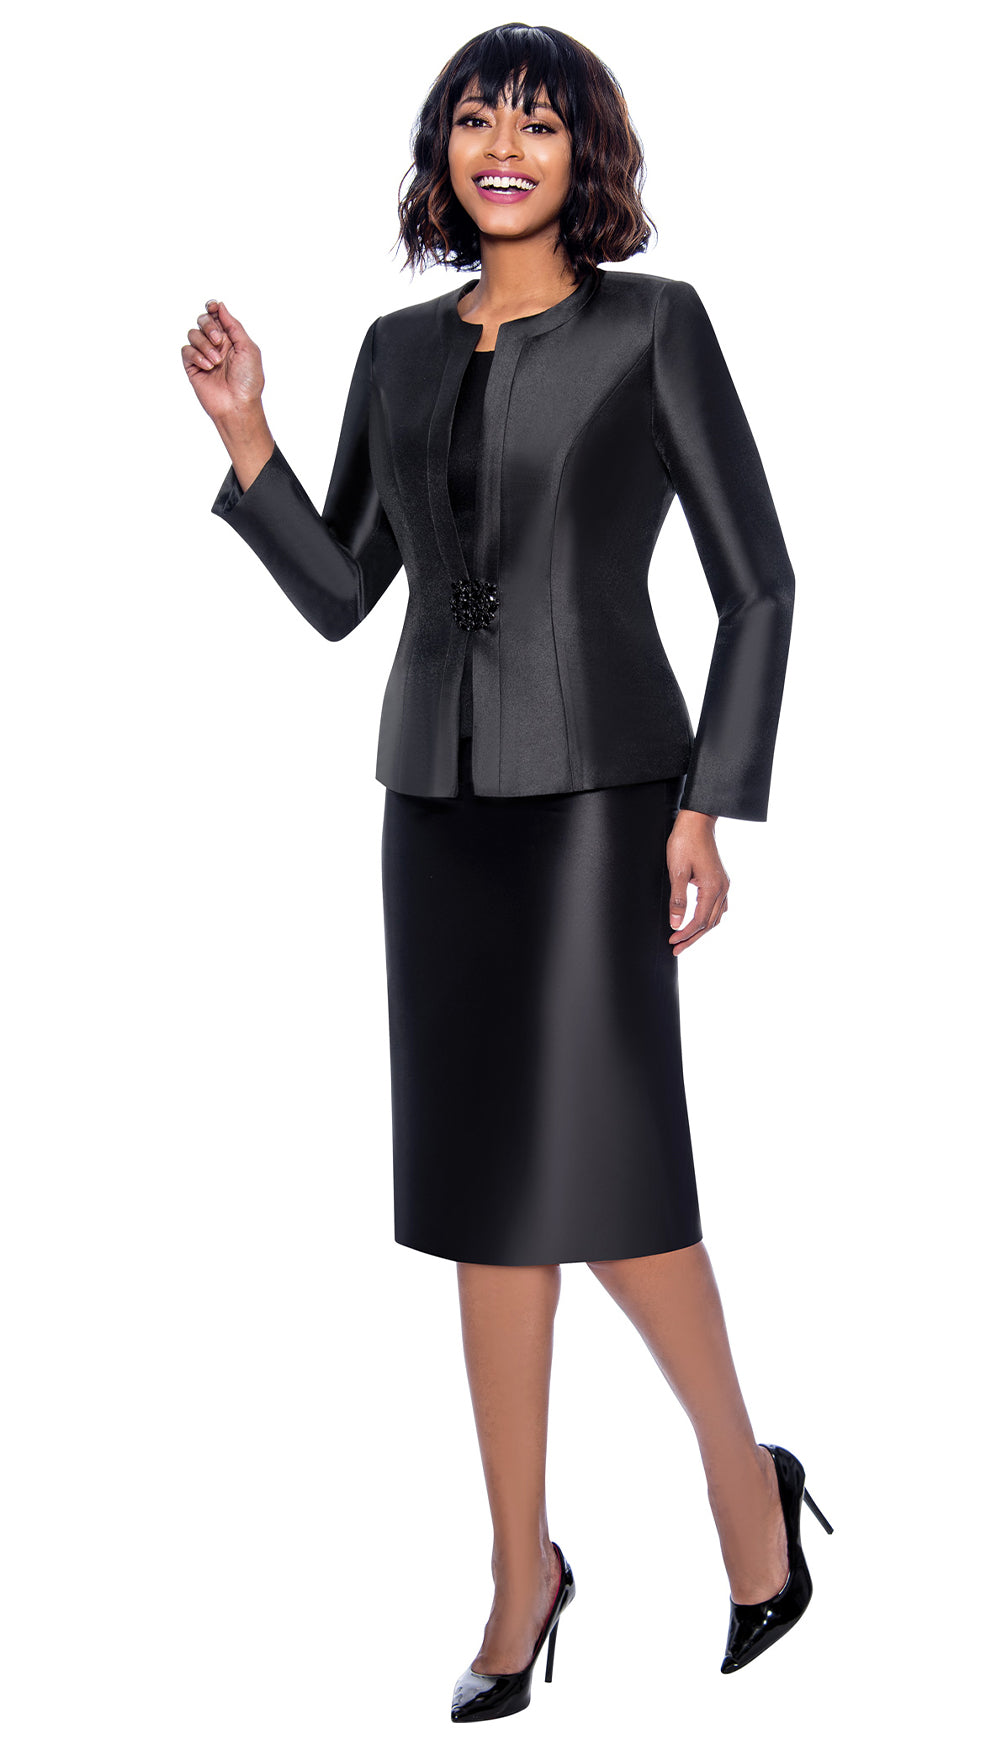 Terramina Suit 7874-Black - Church Suits For Less